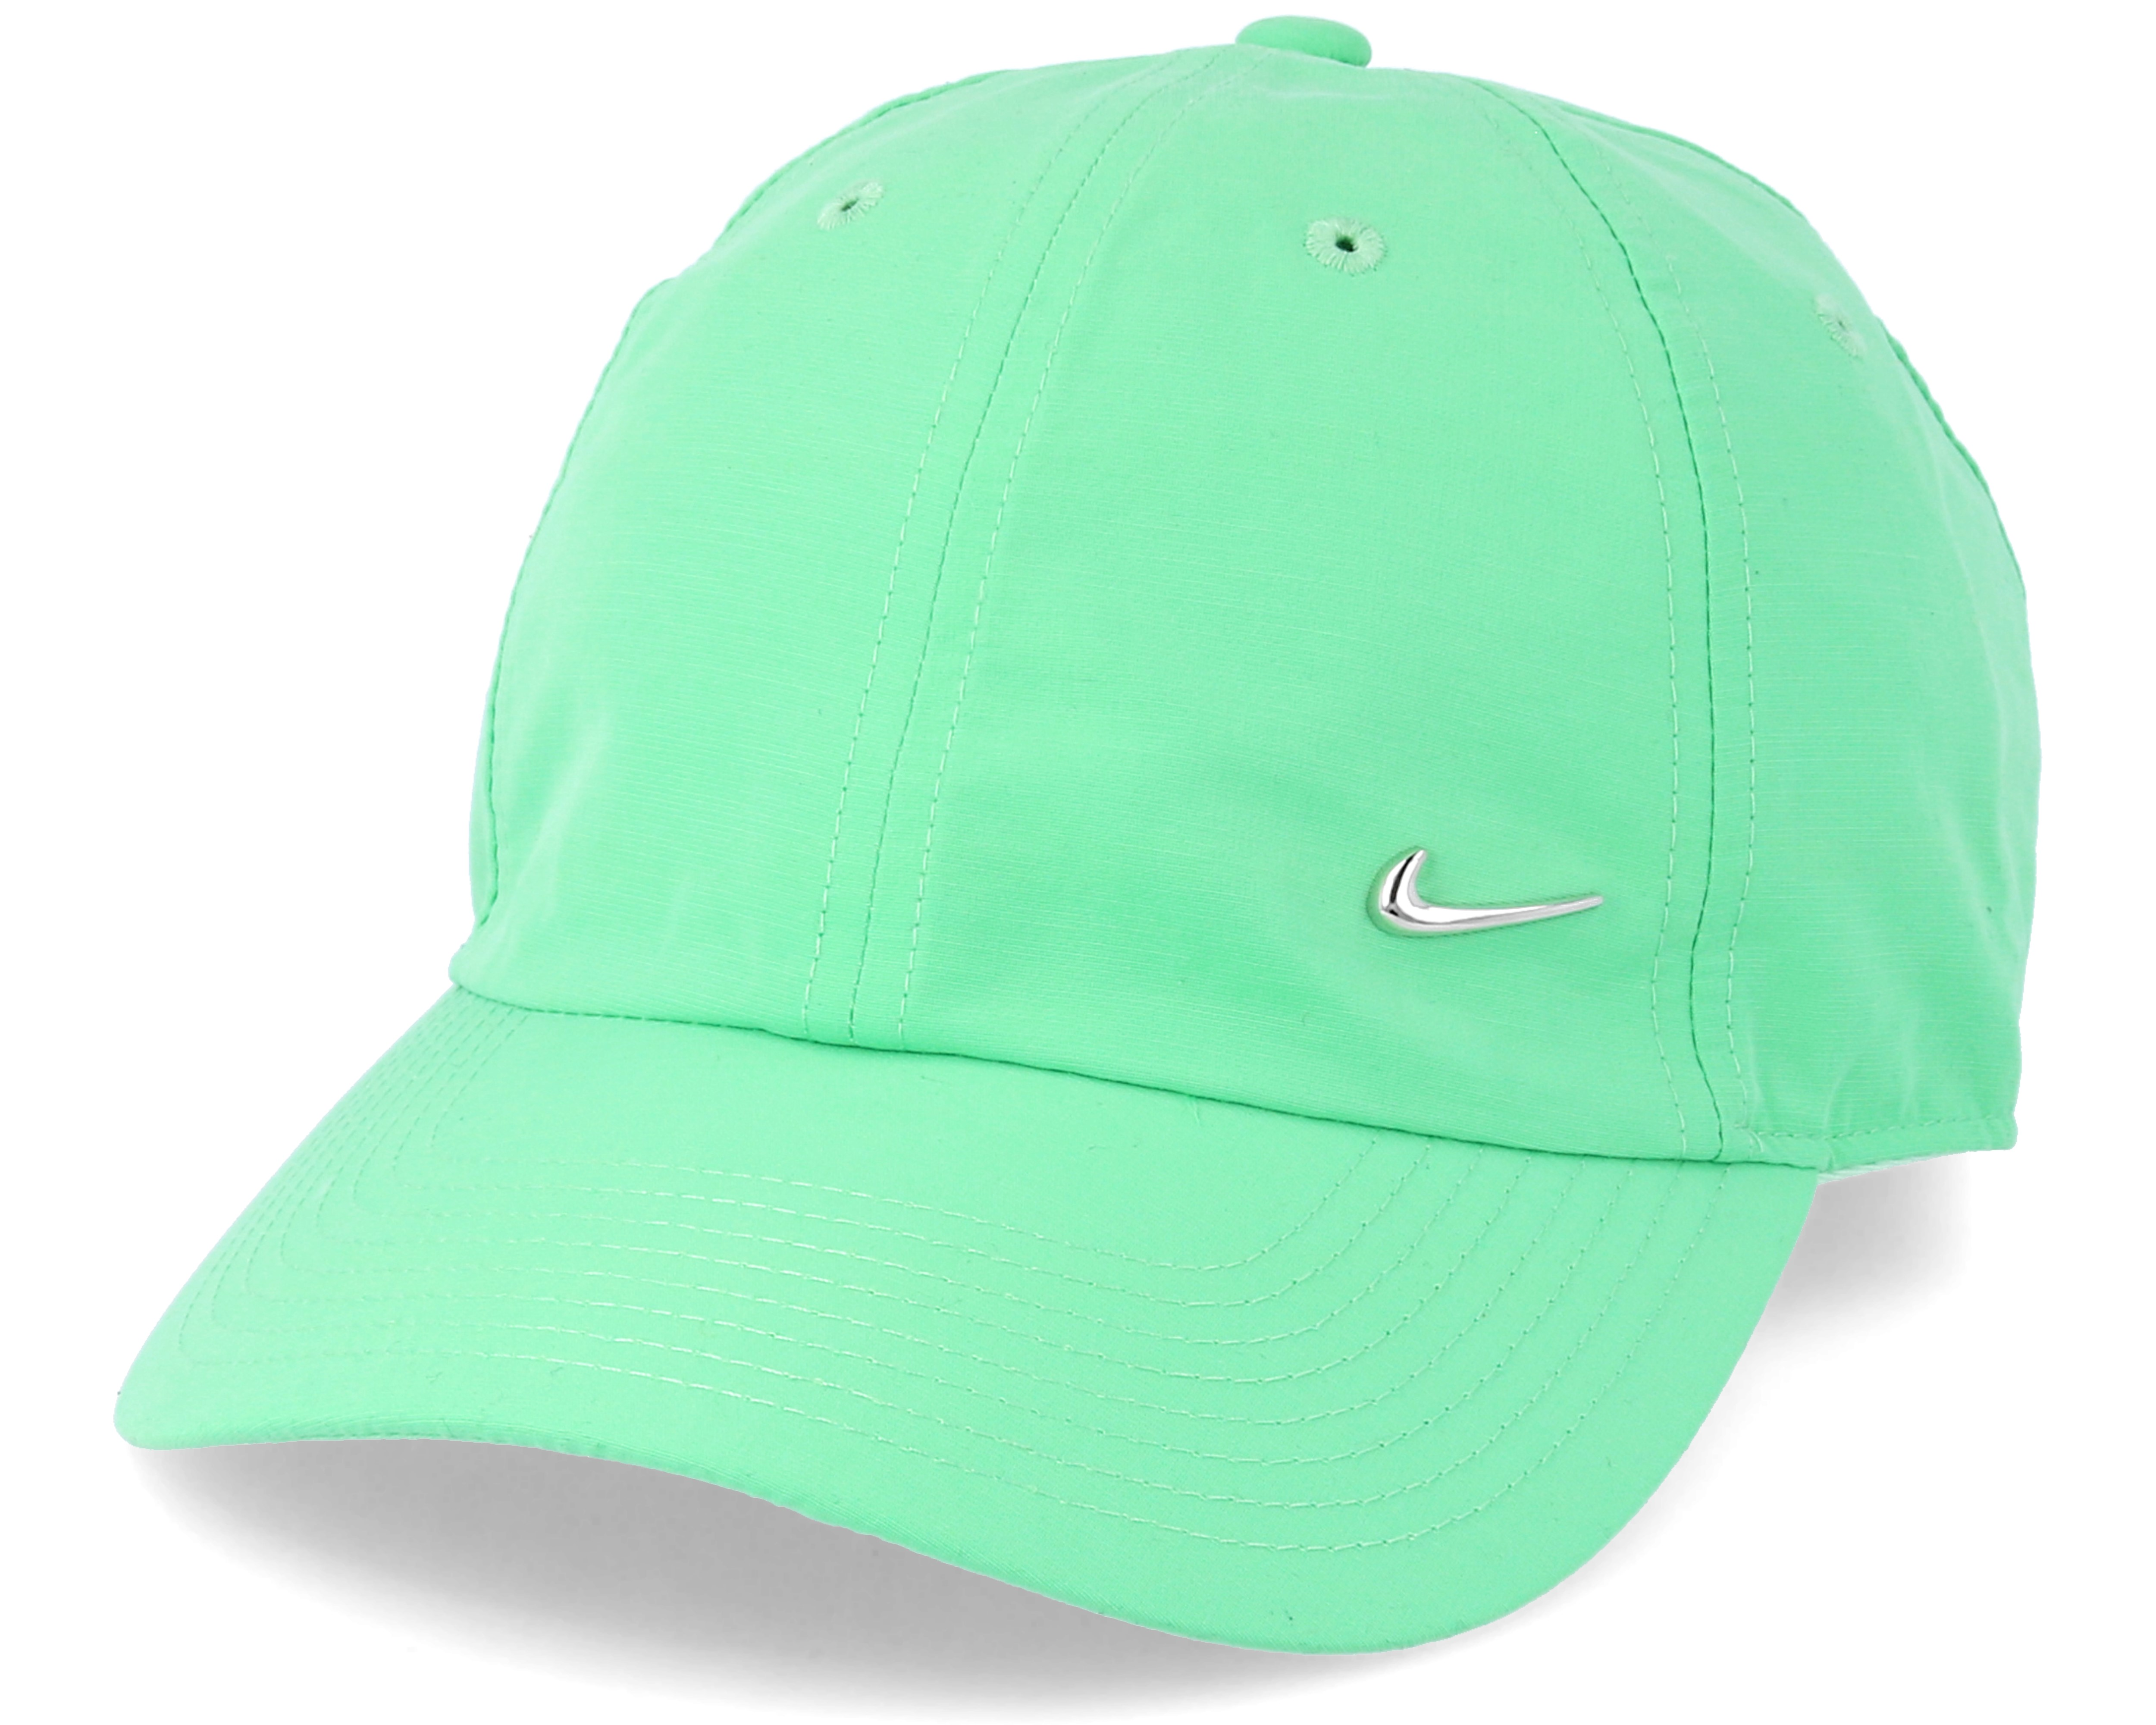 6f71a270dfc ... nike caps hatstore 08b9c b3589 discount swoosh heritage 86 tourmaline  adjustable nike caps hatstore 08b9c b3589  store with nike x sean  wotherspoon ...